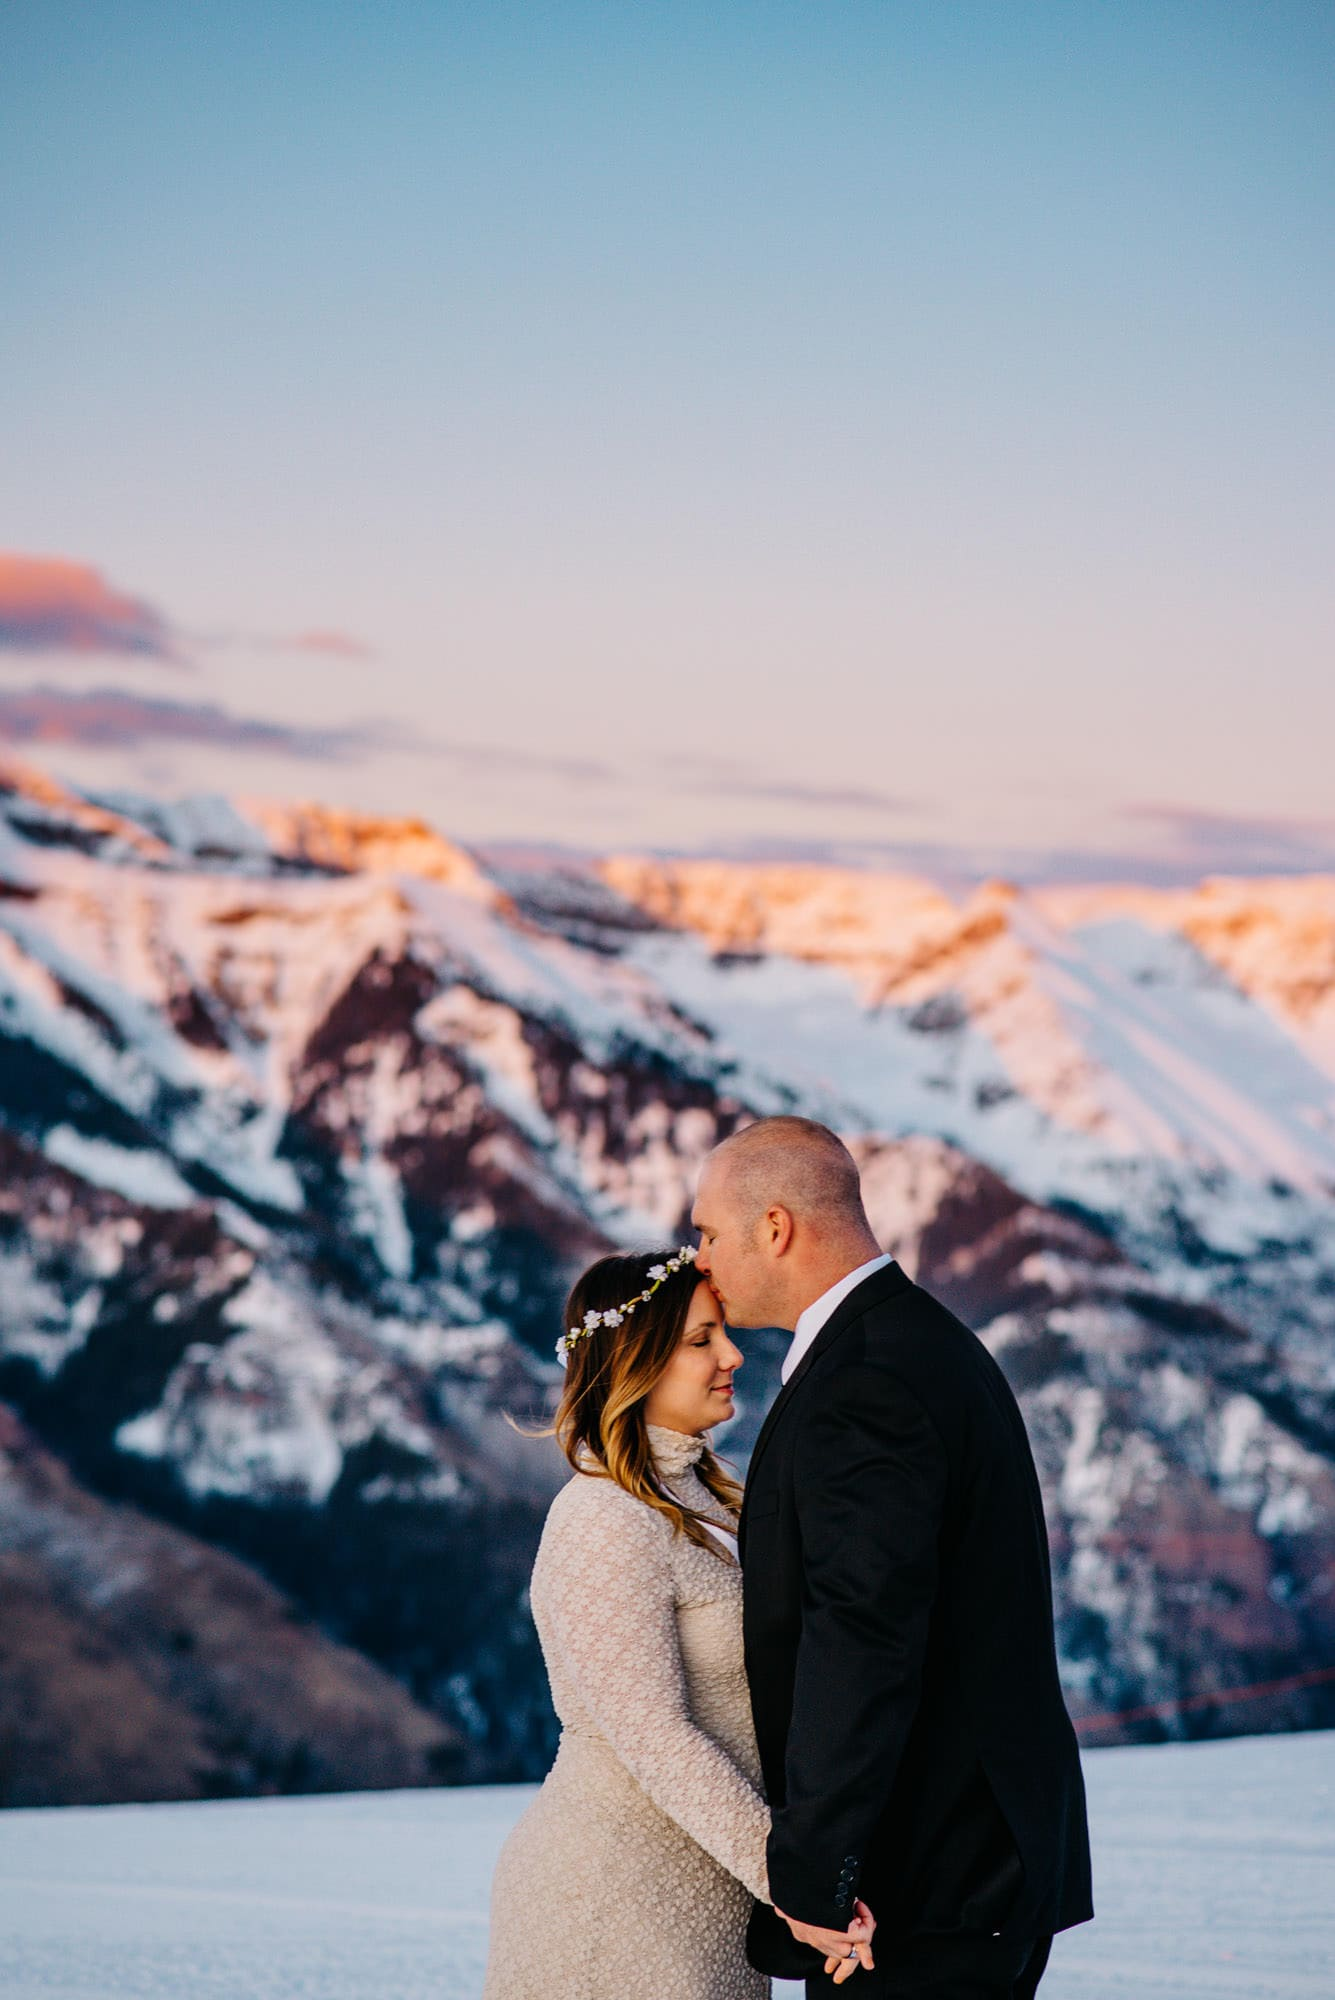 groom kissing brides head on top of a mountain in the snow as the sun glows behind them on the mountains